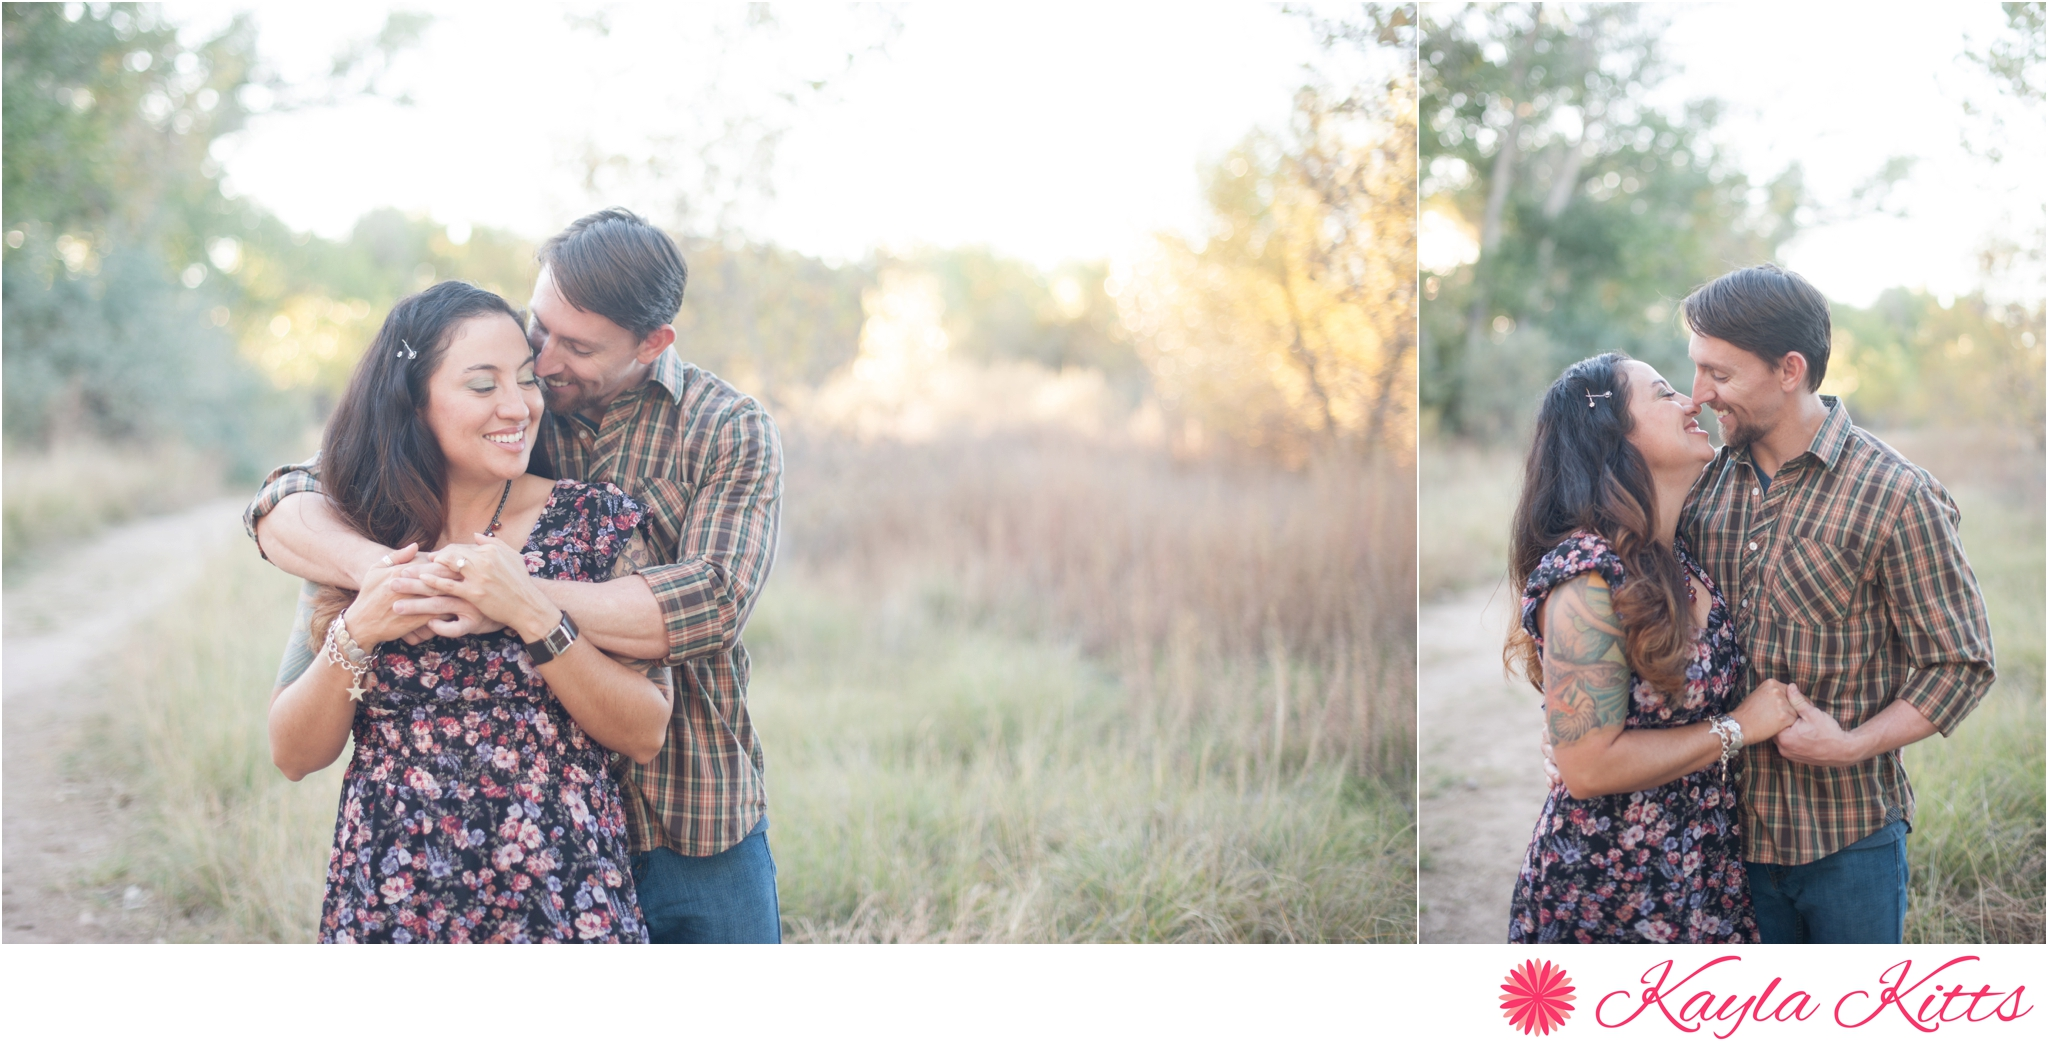 kayla kitts photography - ric and julian - engagement - albuquerque wedding photographer_0027.jpg